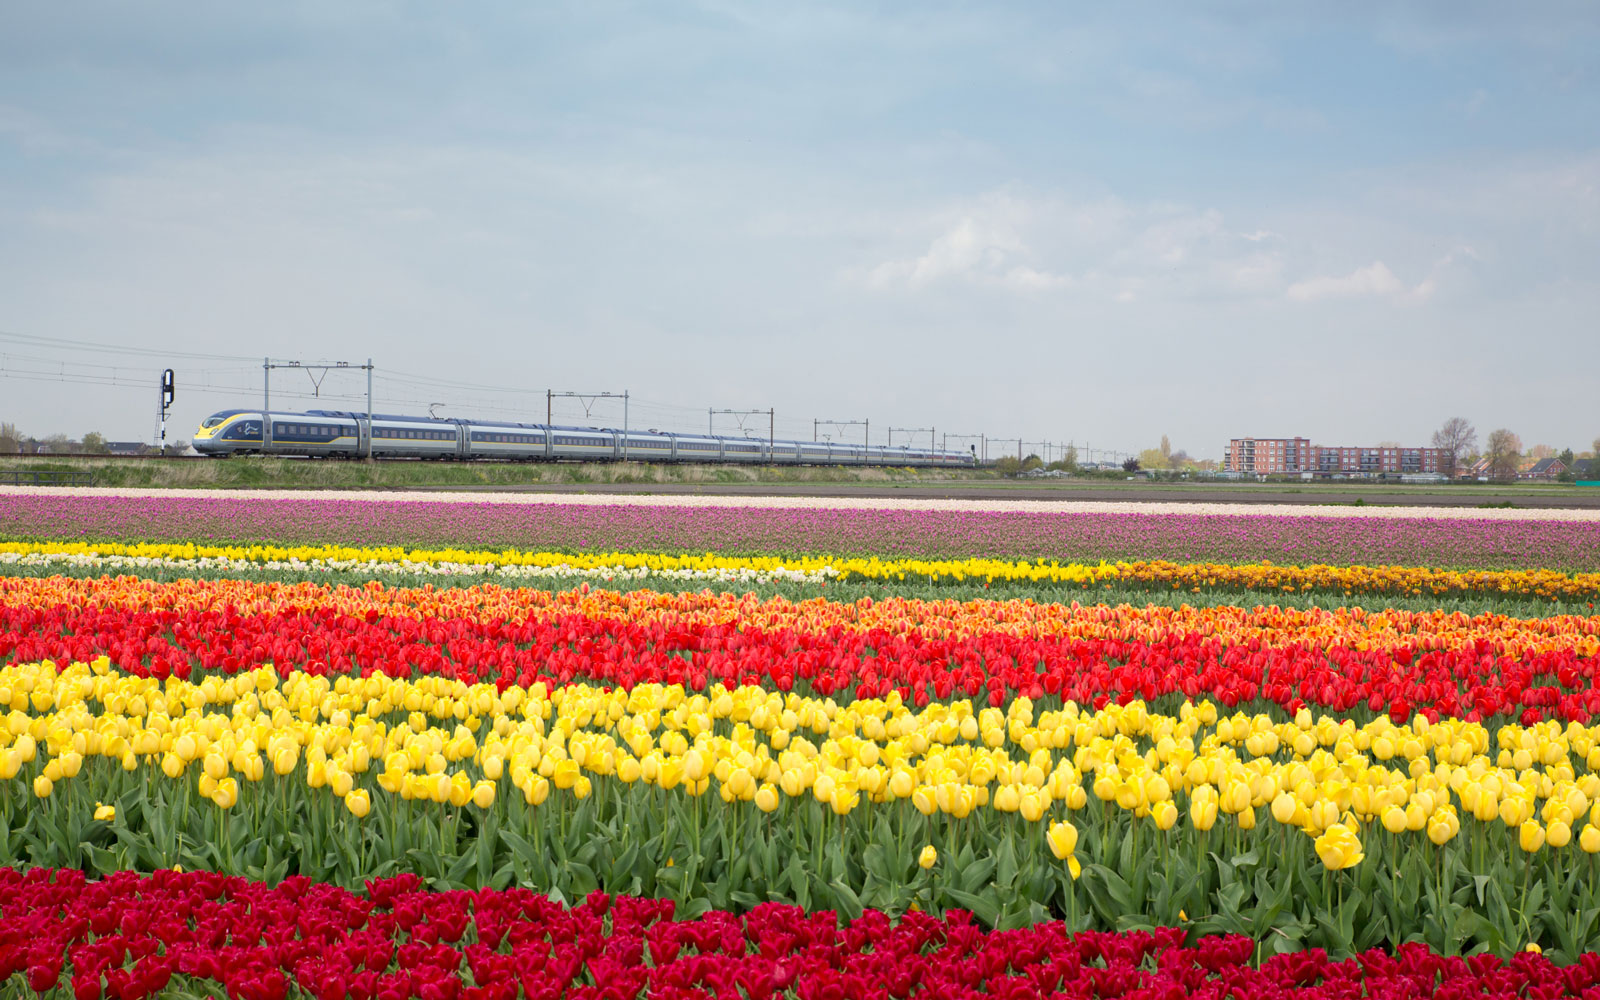 Fast Eurostar Train From London to Amsterdam Coming for Tulip Season